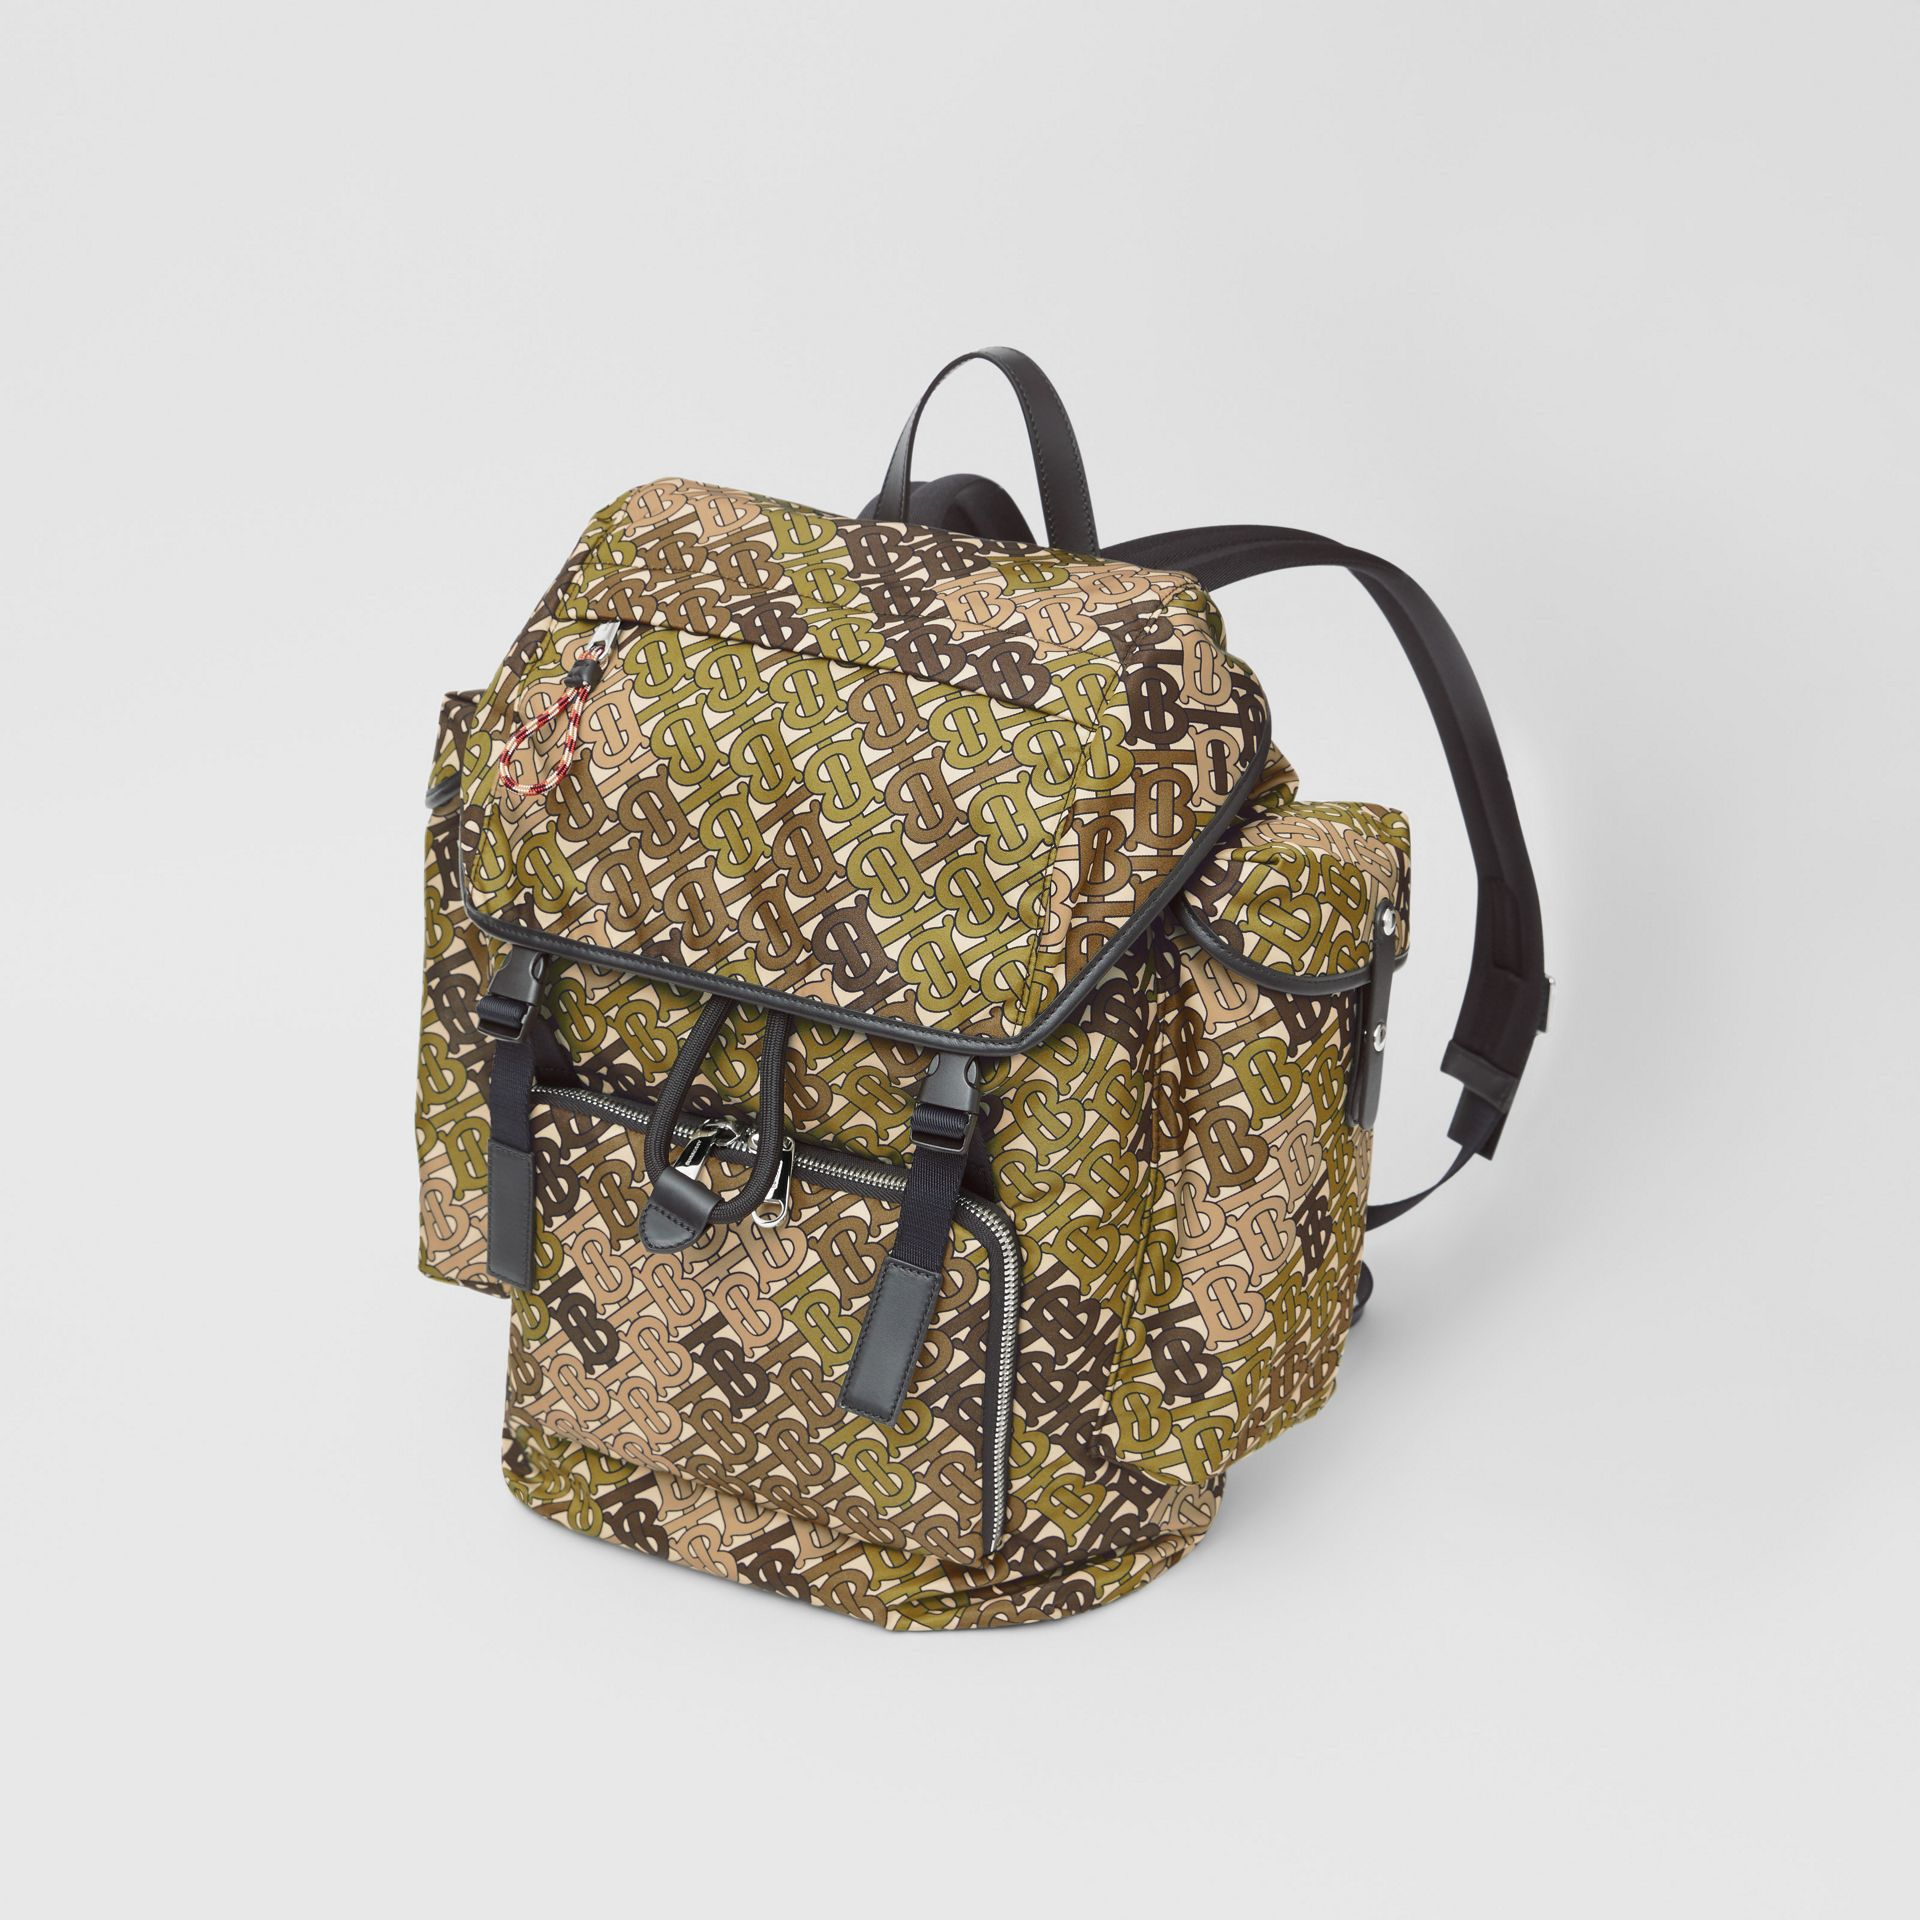 Medium Monogram Print Nylon Backpack in Khaki Green - Men | Burberry - gallery image 3